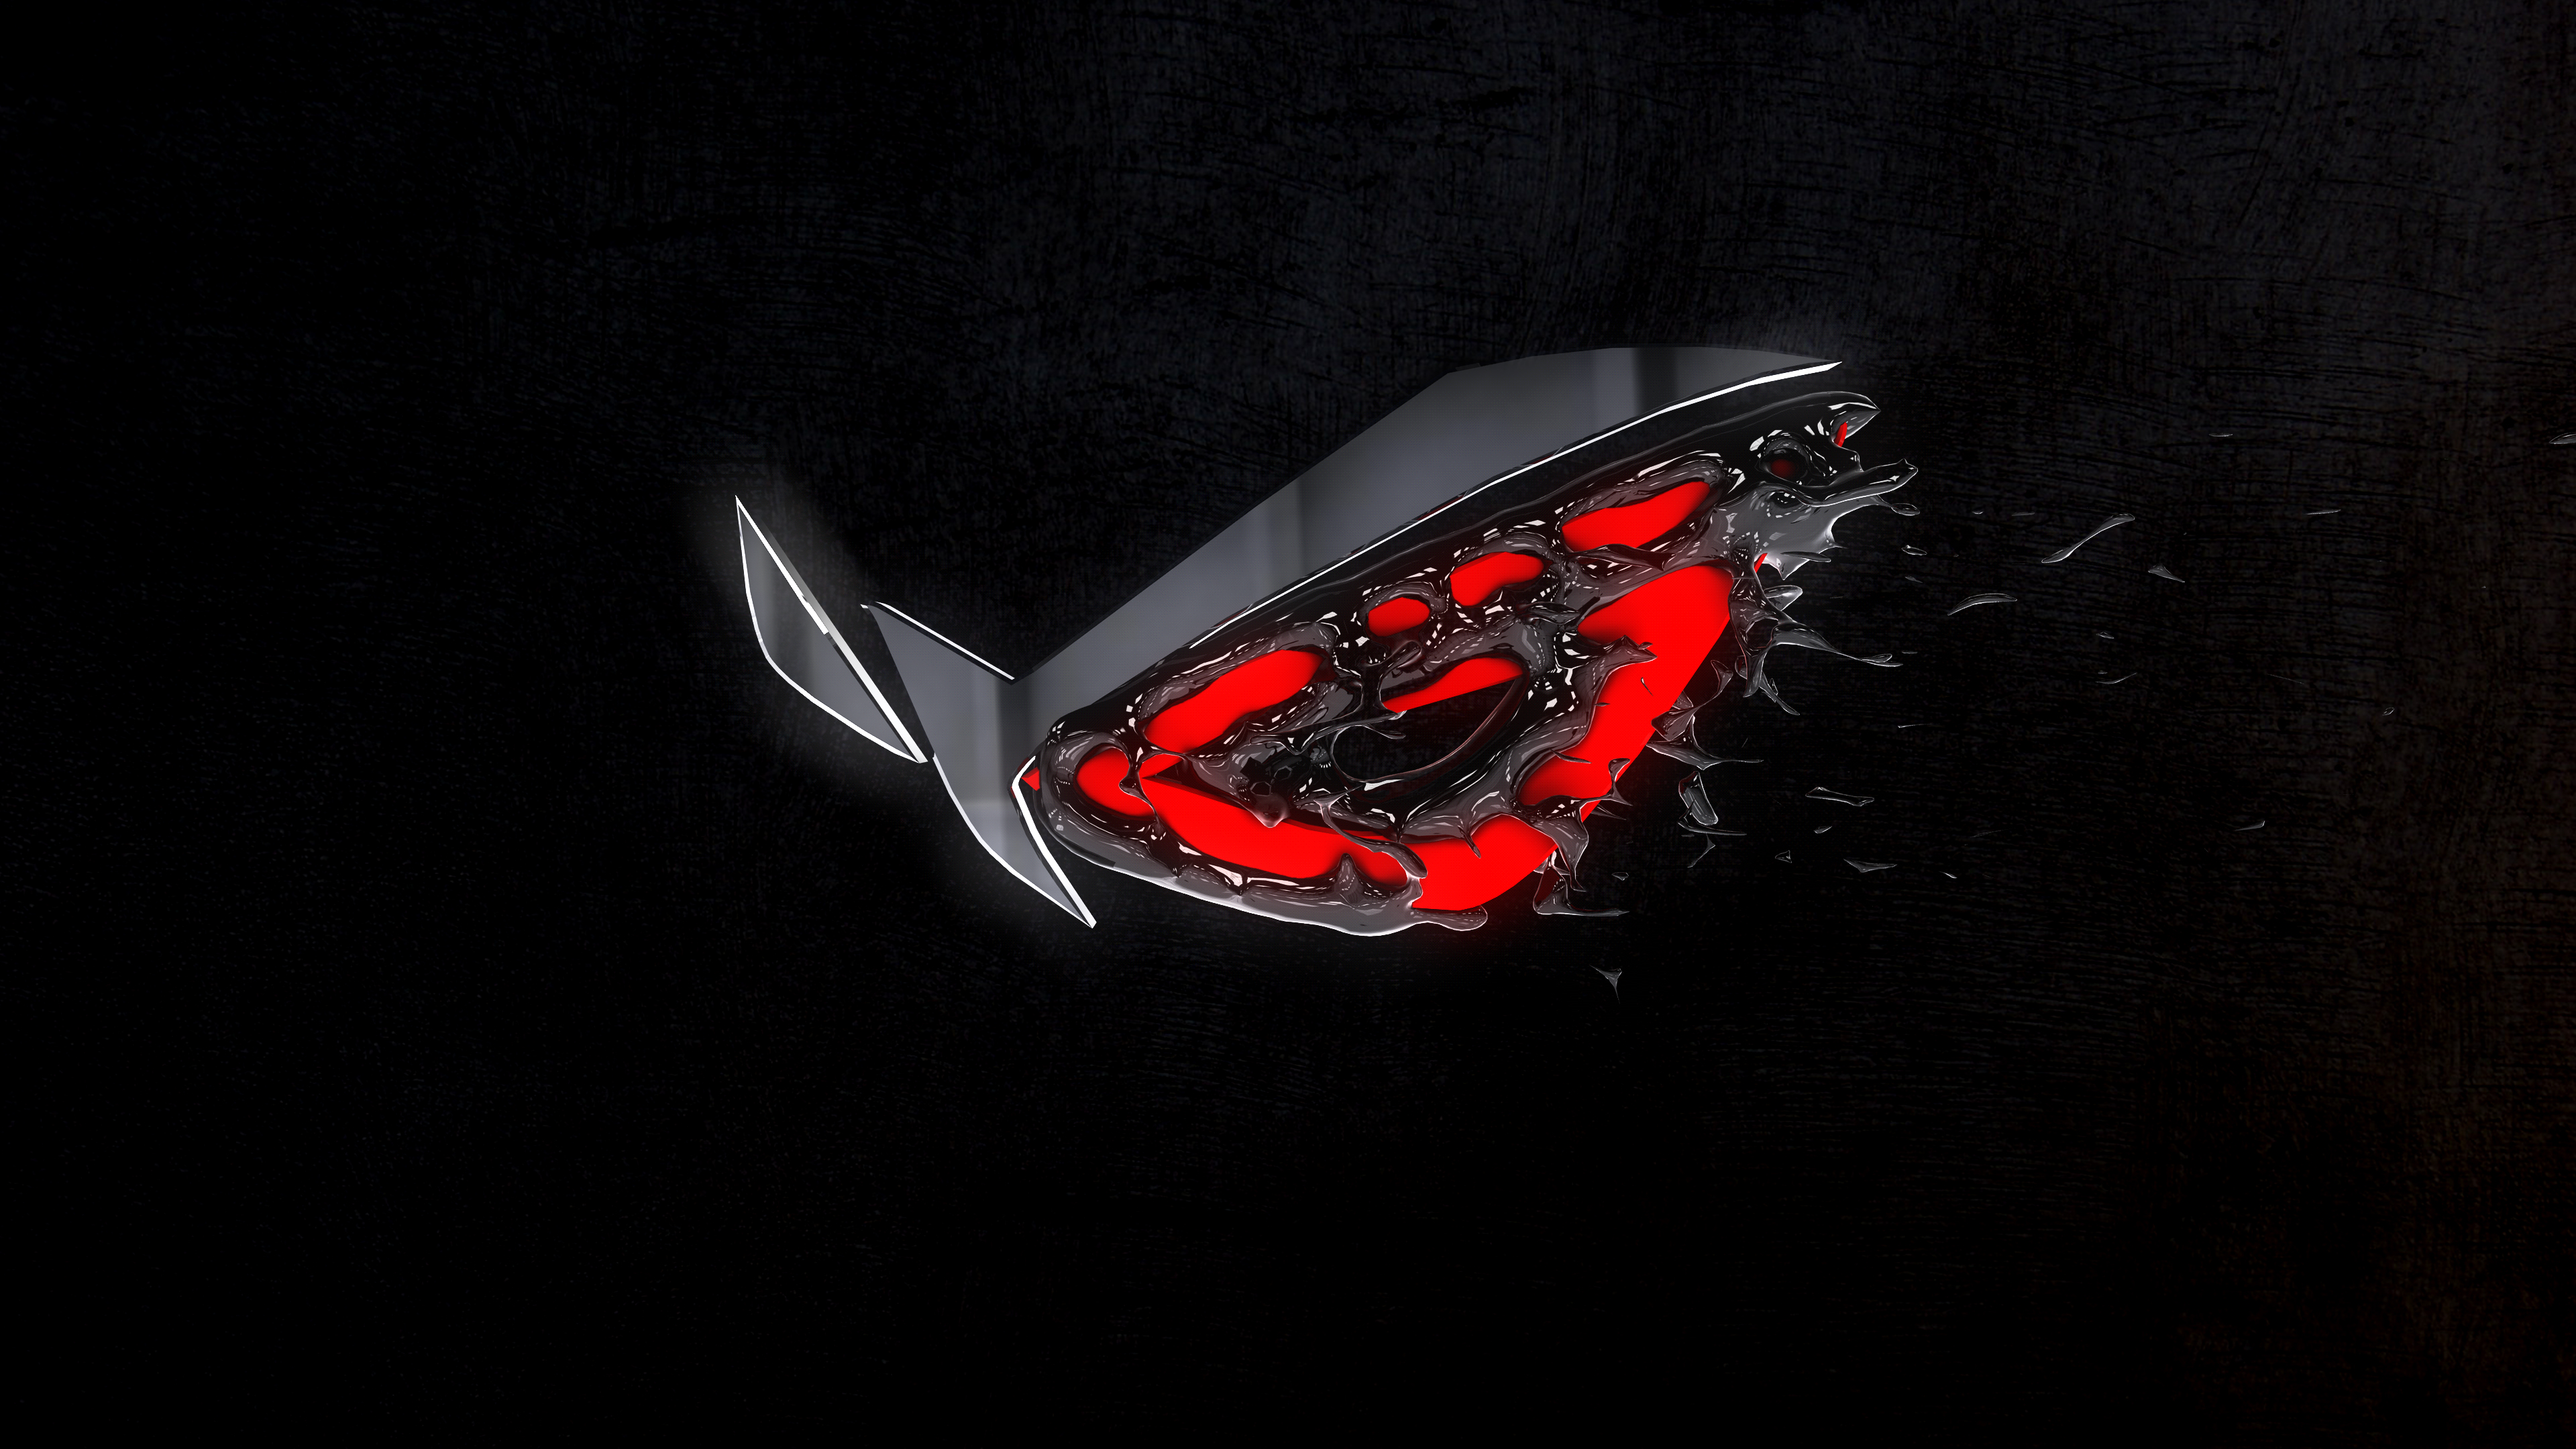 Asus Rog Desktop Wallpaper Republic Of Gamers Hd